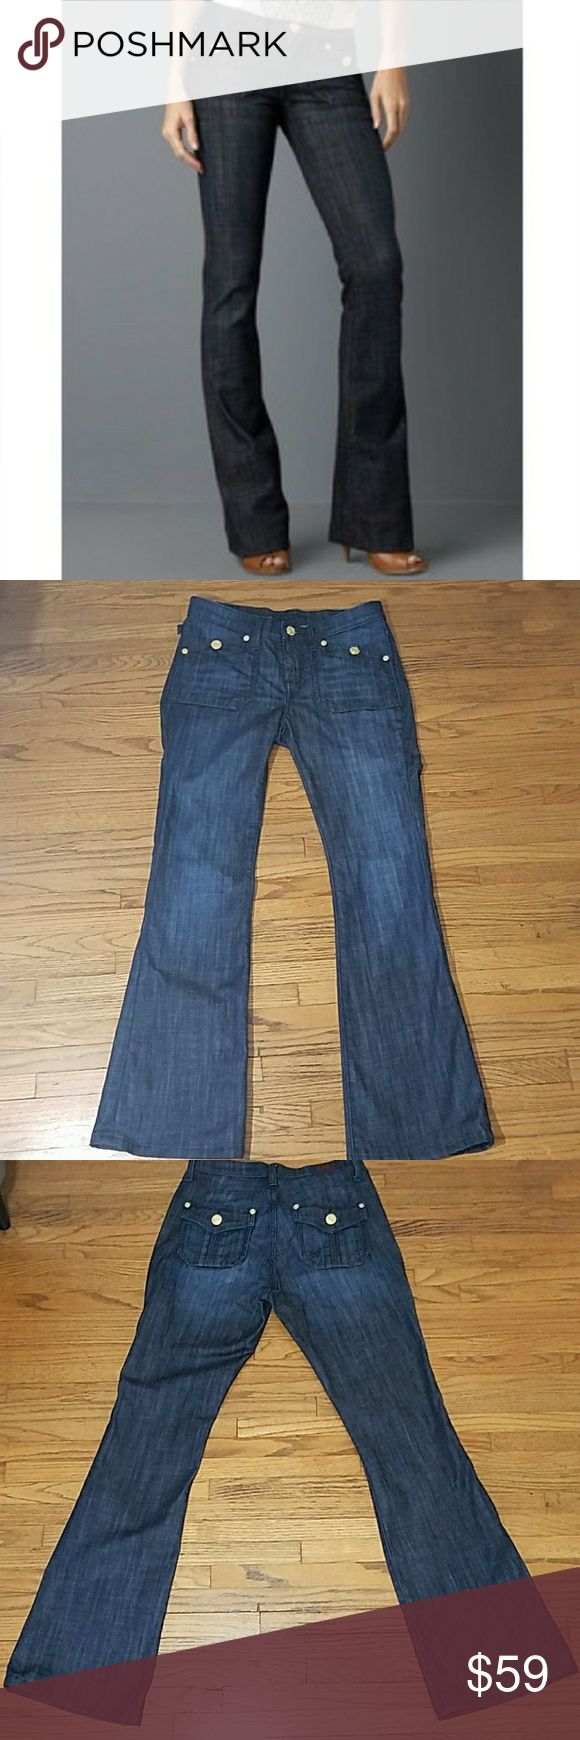 """Rock & Republic Scorpion Dark Wash Jeans. Rock & Republic Scorpion Dark WashJeans. Whiskering and factory distressing. Gold buttons on front and back. Excellent used condition, worn and washed once. Size 8. Approximate measurements taken with garment lying flat: waist 16""""1/2, rise 9""""1/4, 32"""" inseam. Feel free to ask any questions before purchase. Bundle 2 or more items to get automatic 10% discount. Rock & Republic Jeans"""